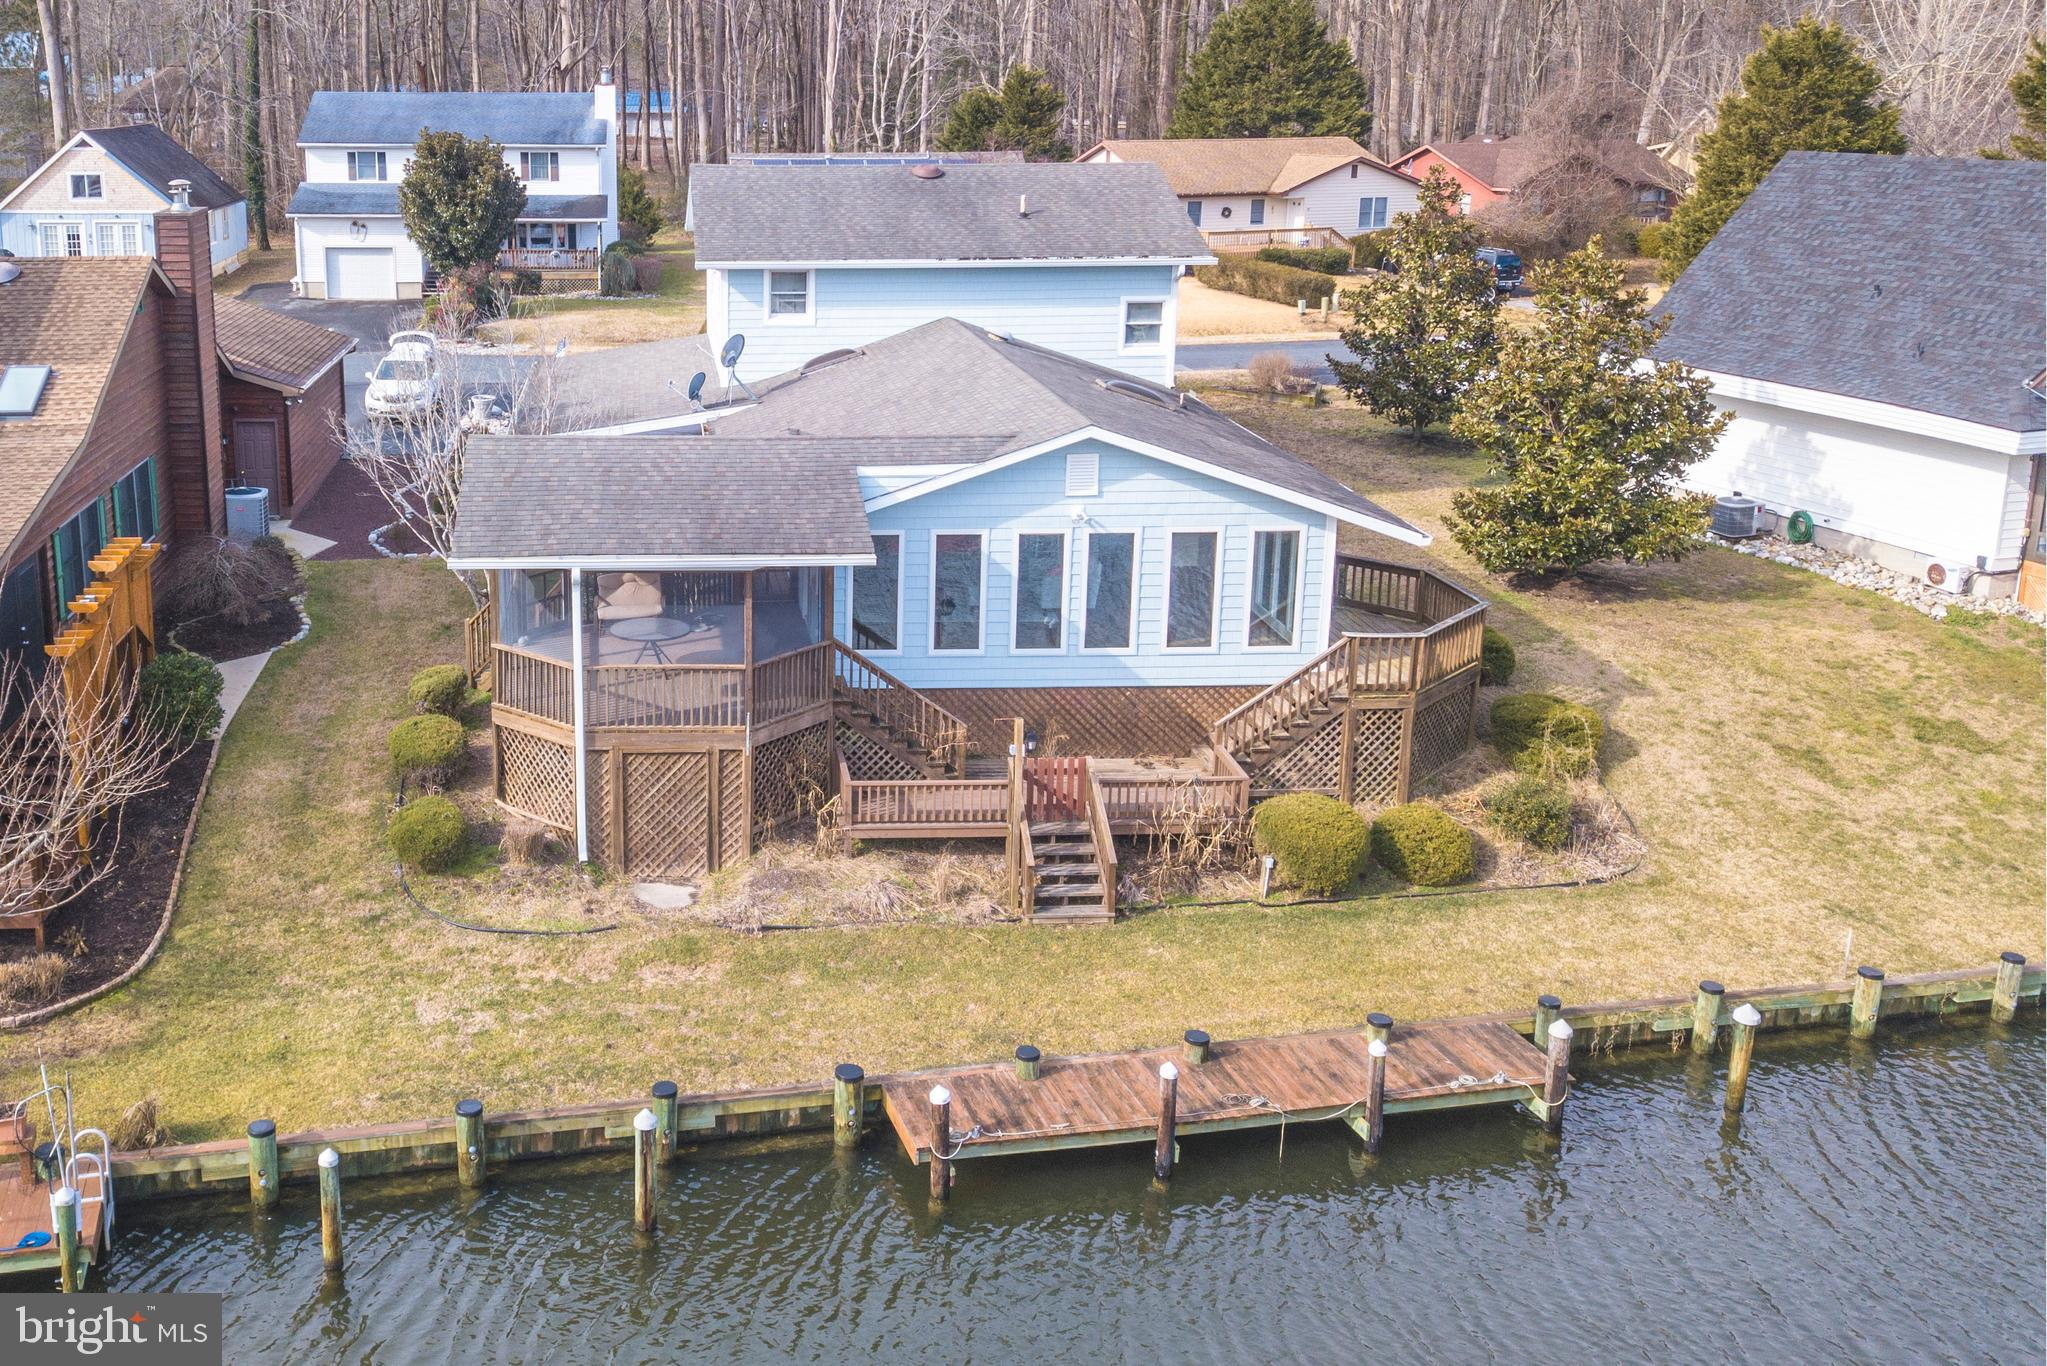 New price! Waterfront  contemporary with many new updates and the entire 1st floor redone. New vinyl siding done 2 years ago. New kitchen with bar center island. New 1st floor tile full bath with walk-in shower.  Huge living and dining area with great water views. Large 25 x 4 dock with easy access to river, bay and ocean. Screened porch with unique design. Attached 38 x 12 car port. Roof new in 2012.  Owners would consider decorator allowance for upstairs painting which they never got to do. Office/workroom, which was a garage, with lots of built-in cabinets and storage. 1 year Cinch Home Warranty included. Multizone Heat Pump. Furniture negotiable. Short walk to White Horse Park with Community Center, playground, skate bowl park, Craft Shop, walking trails and Farmer's market on weekends weather permitting. Close to Ocean Pines Boat Ramp. Easy to see.